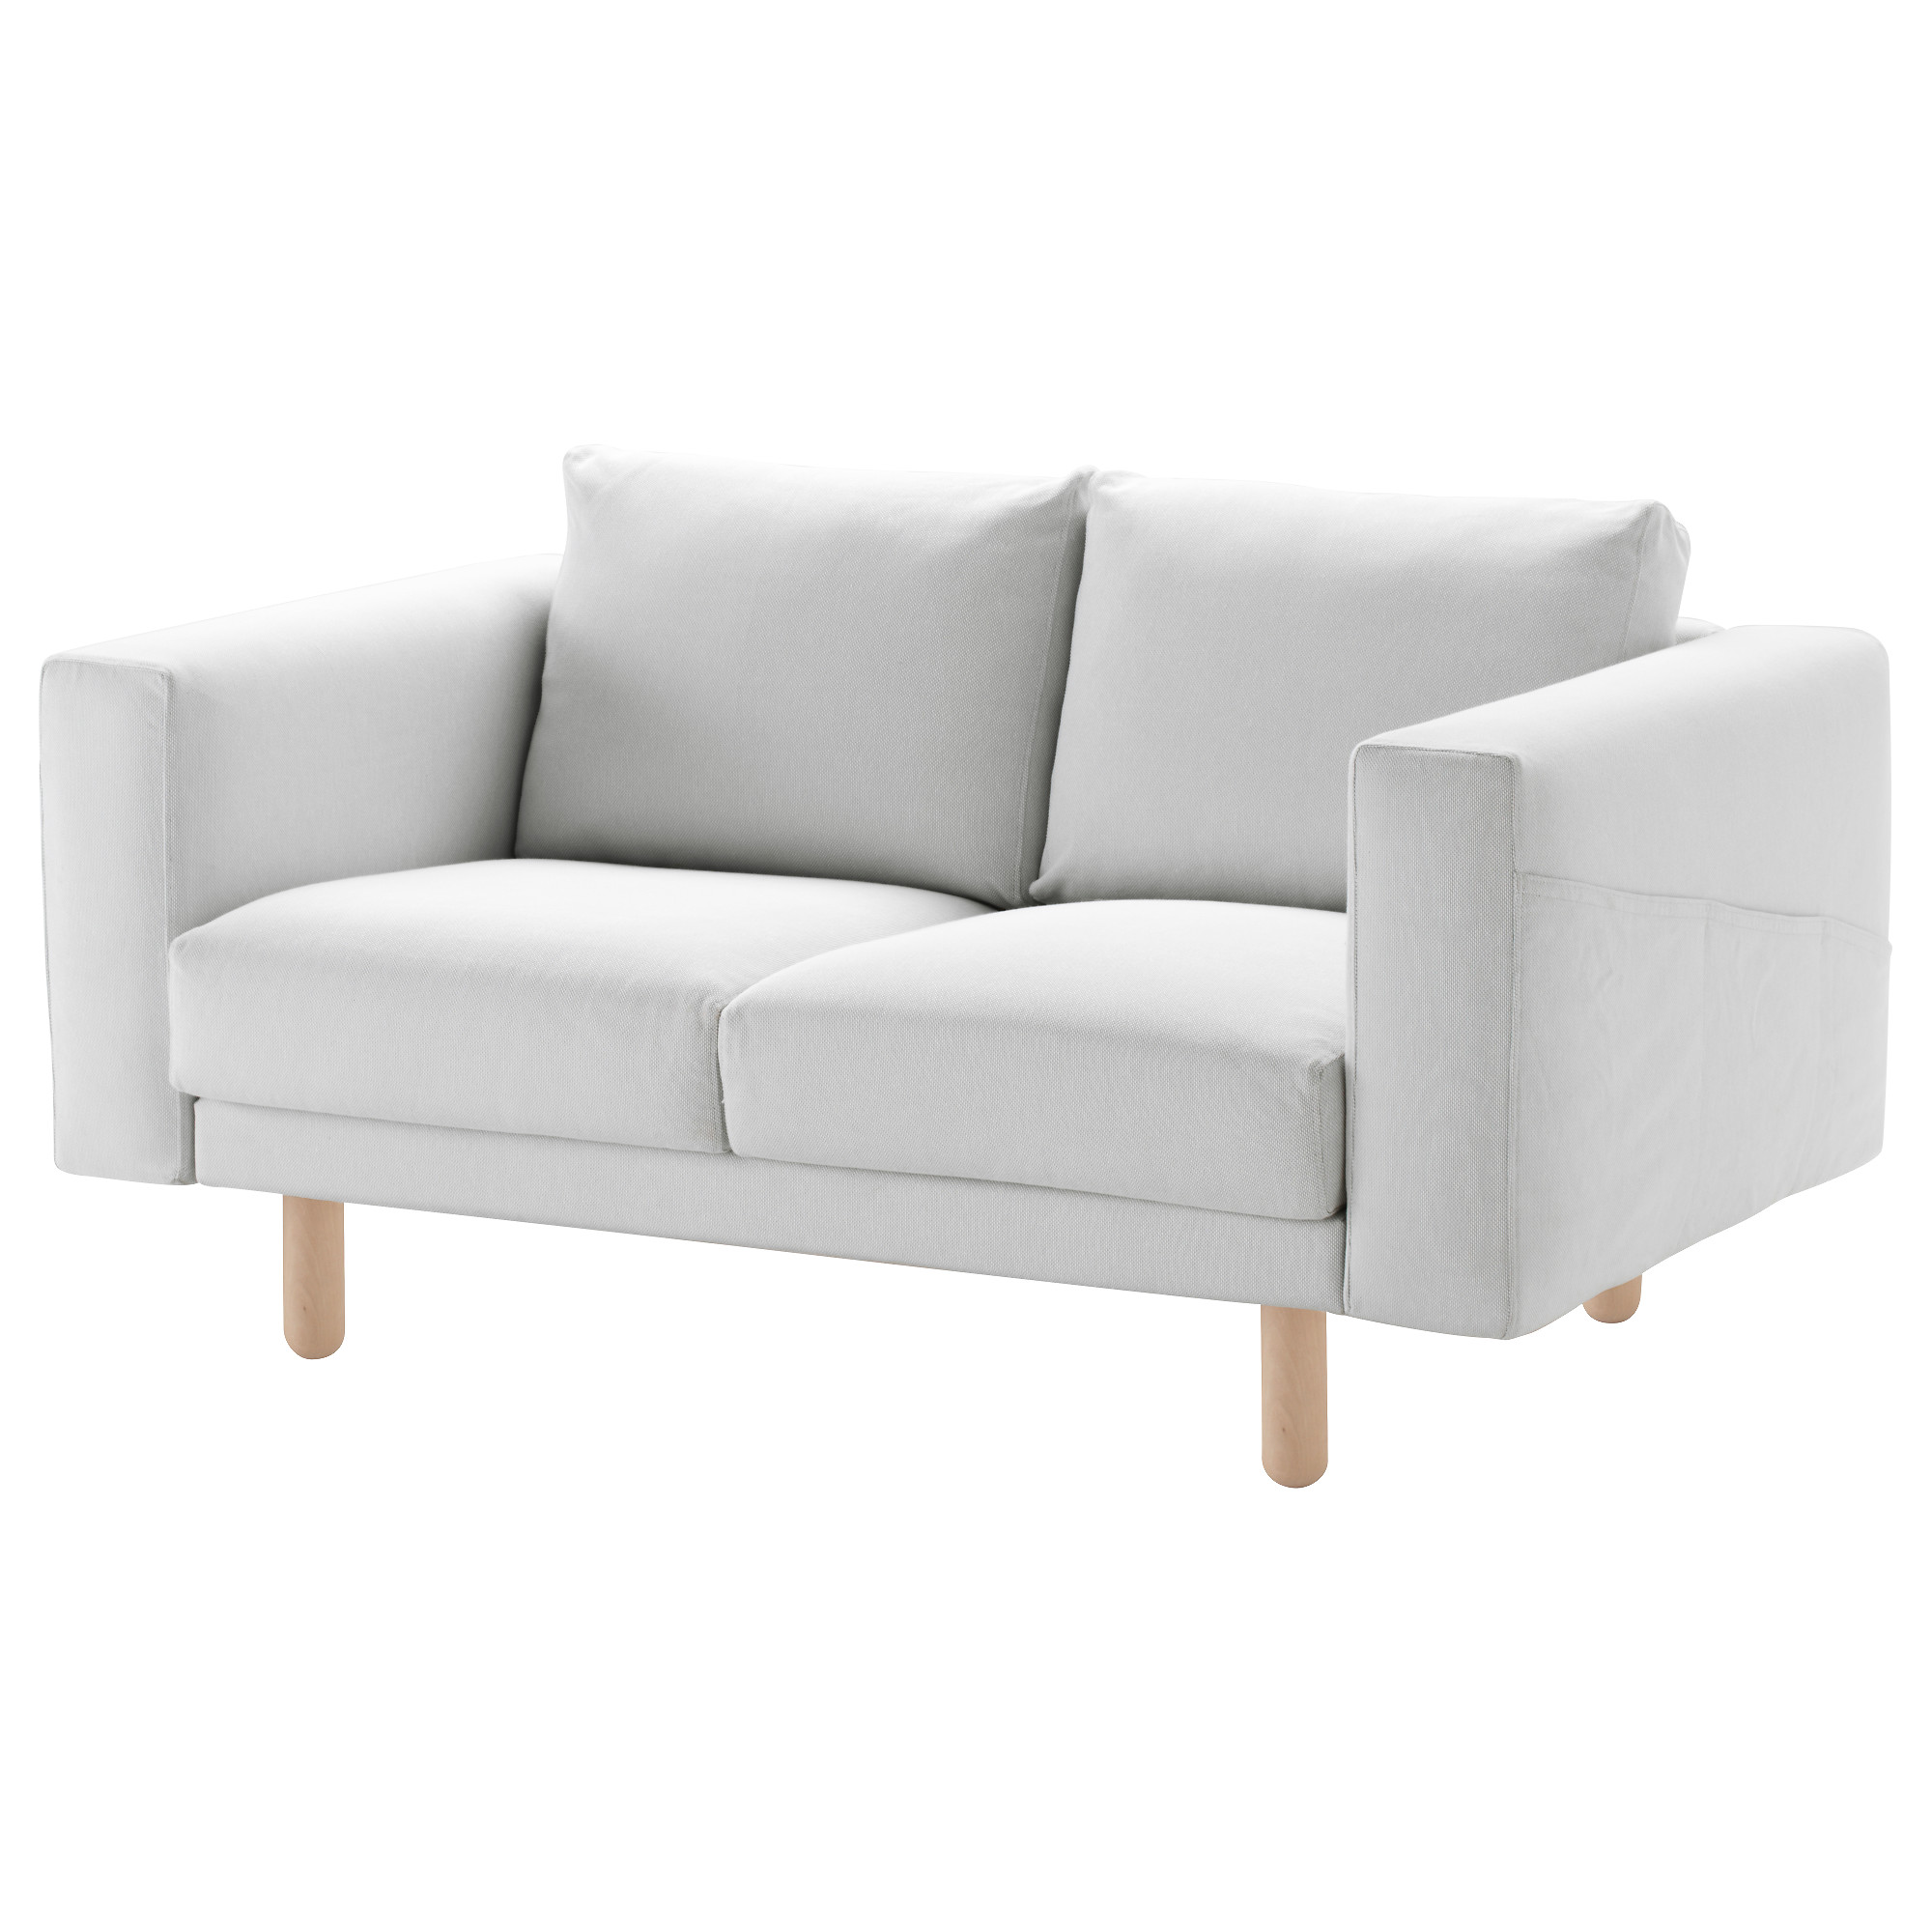 Design Small Sofas fabric loveseats ikea norsborg loveseat finnsta white birch width 60 14 depth